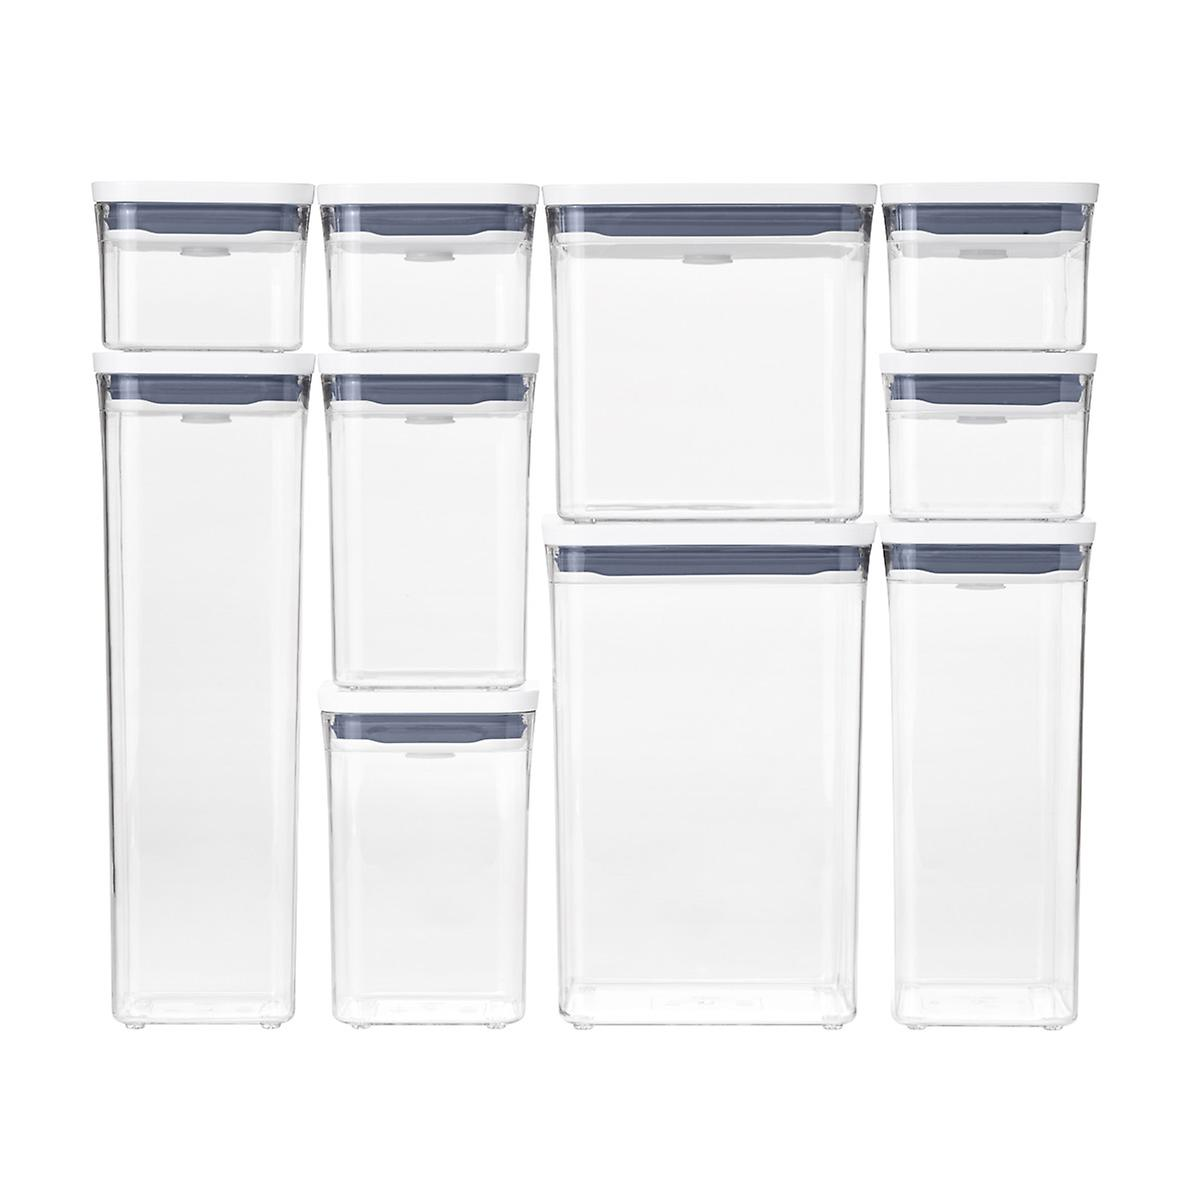 Oxo Good Grips Pop 10 Piece Canisters The Container Store